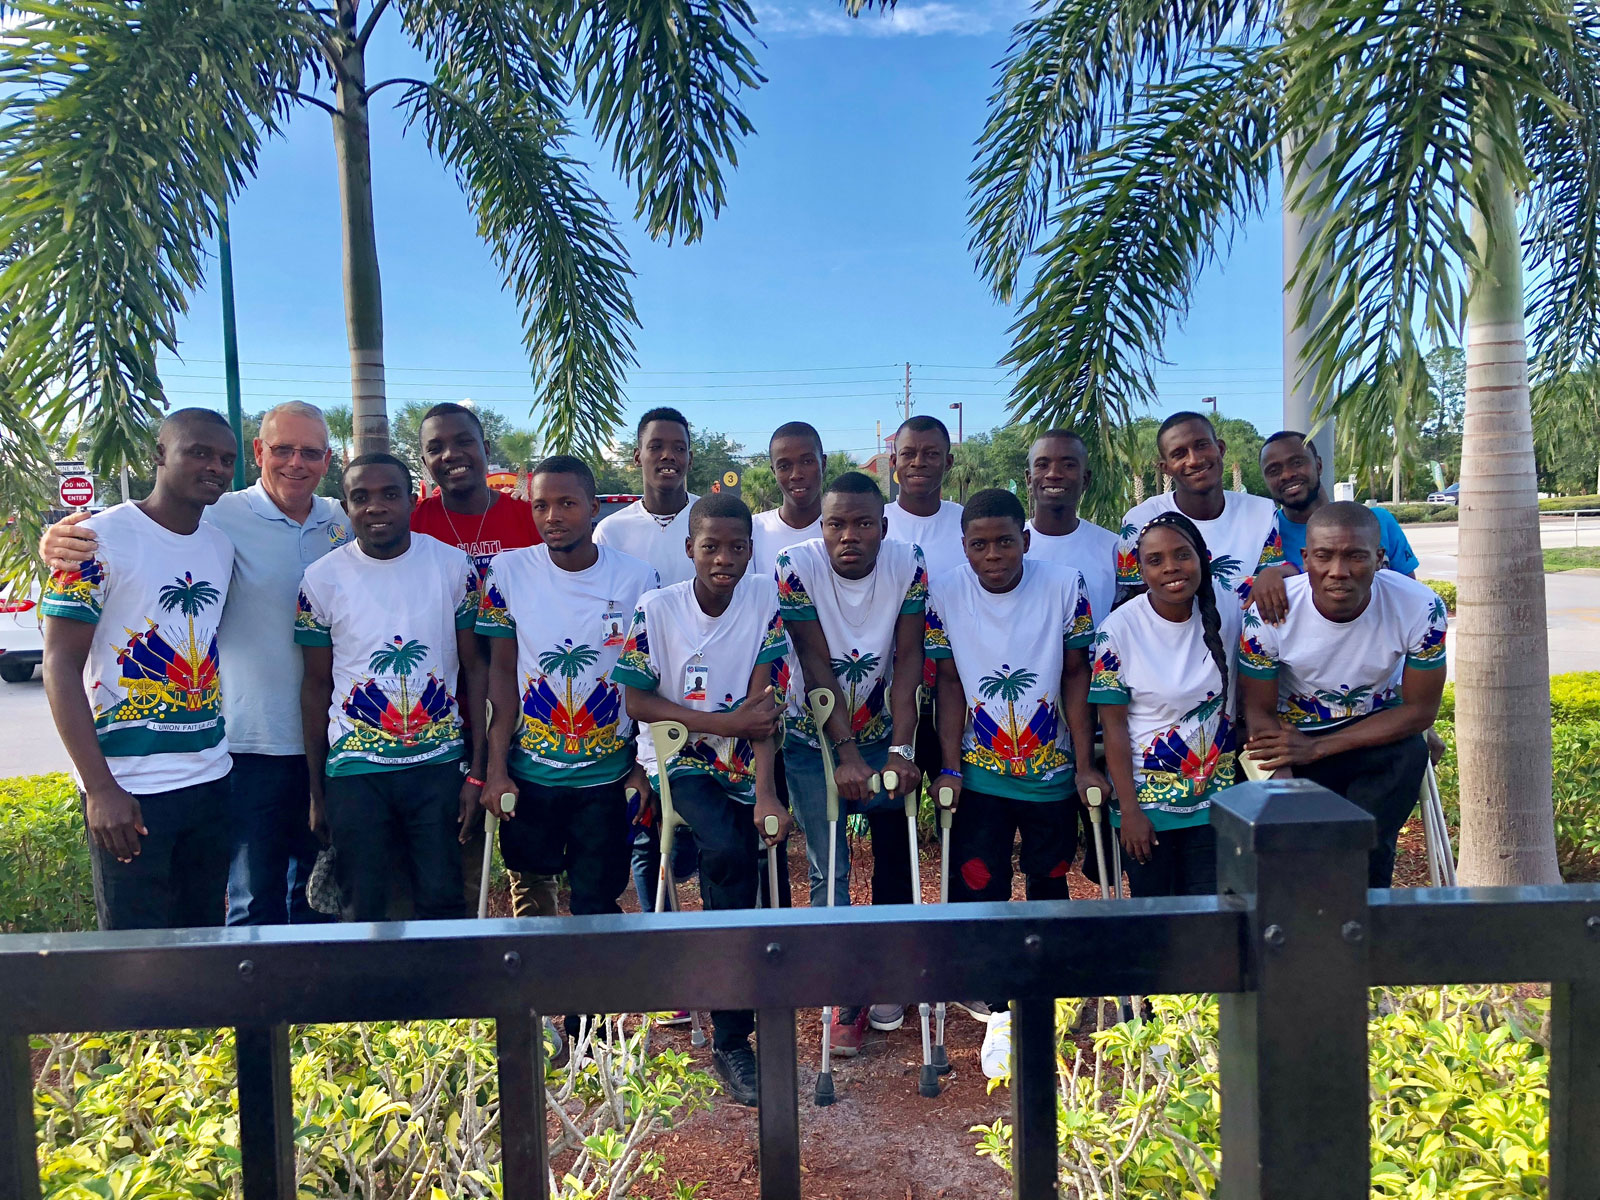 2018 Lone Star Invitational - Haiti Amputee Soccer Team